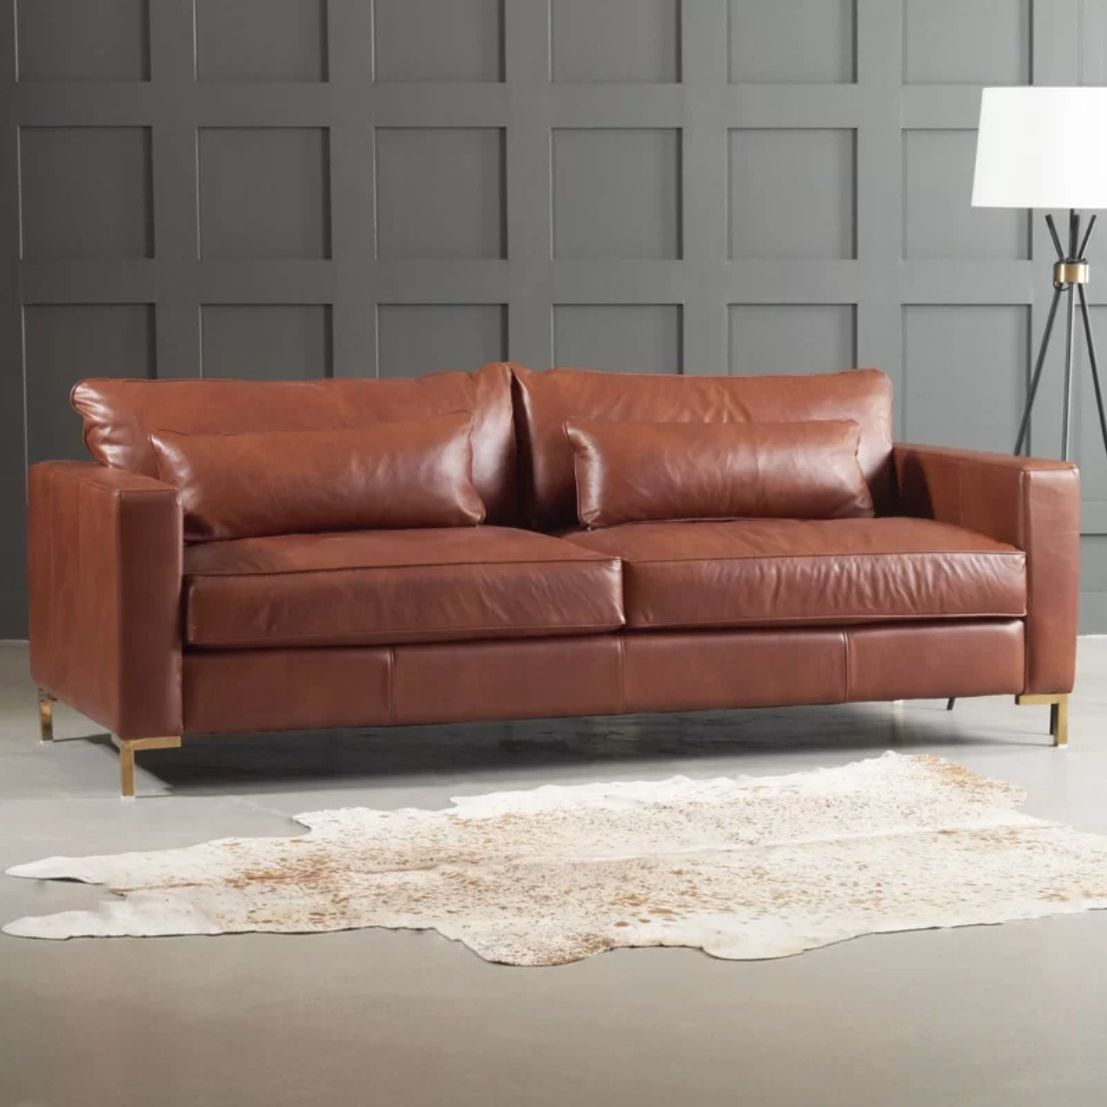 Knowledge is power in situations like that, so it's helpful to know what to look for and how to get the best possible deal before you start shopping. The 7 Best Couches for Your Home in 2019